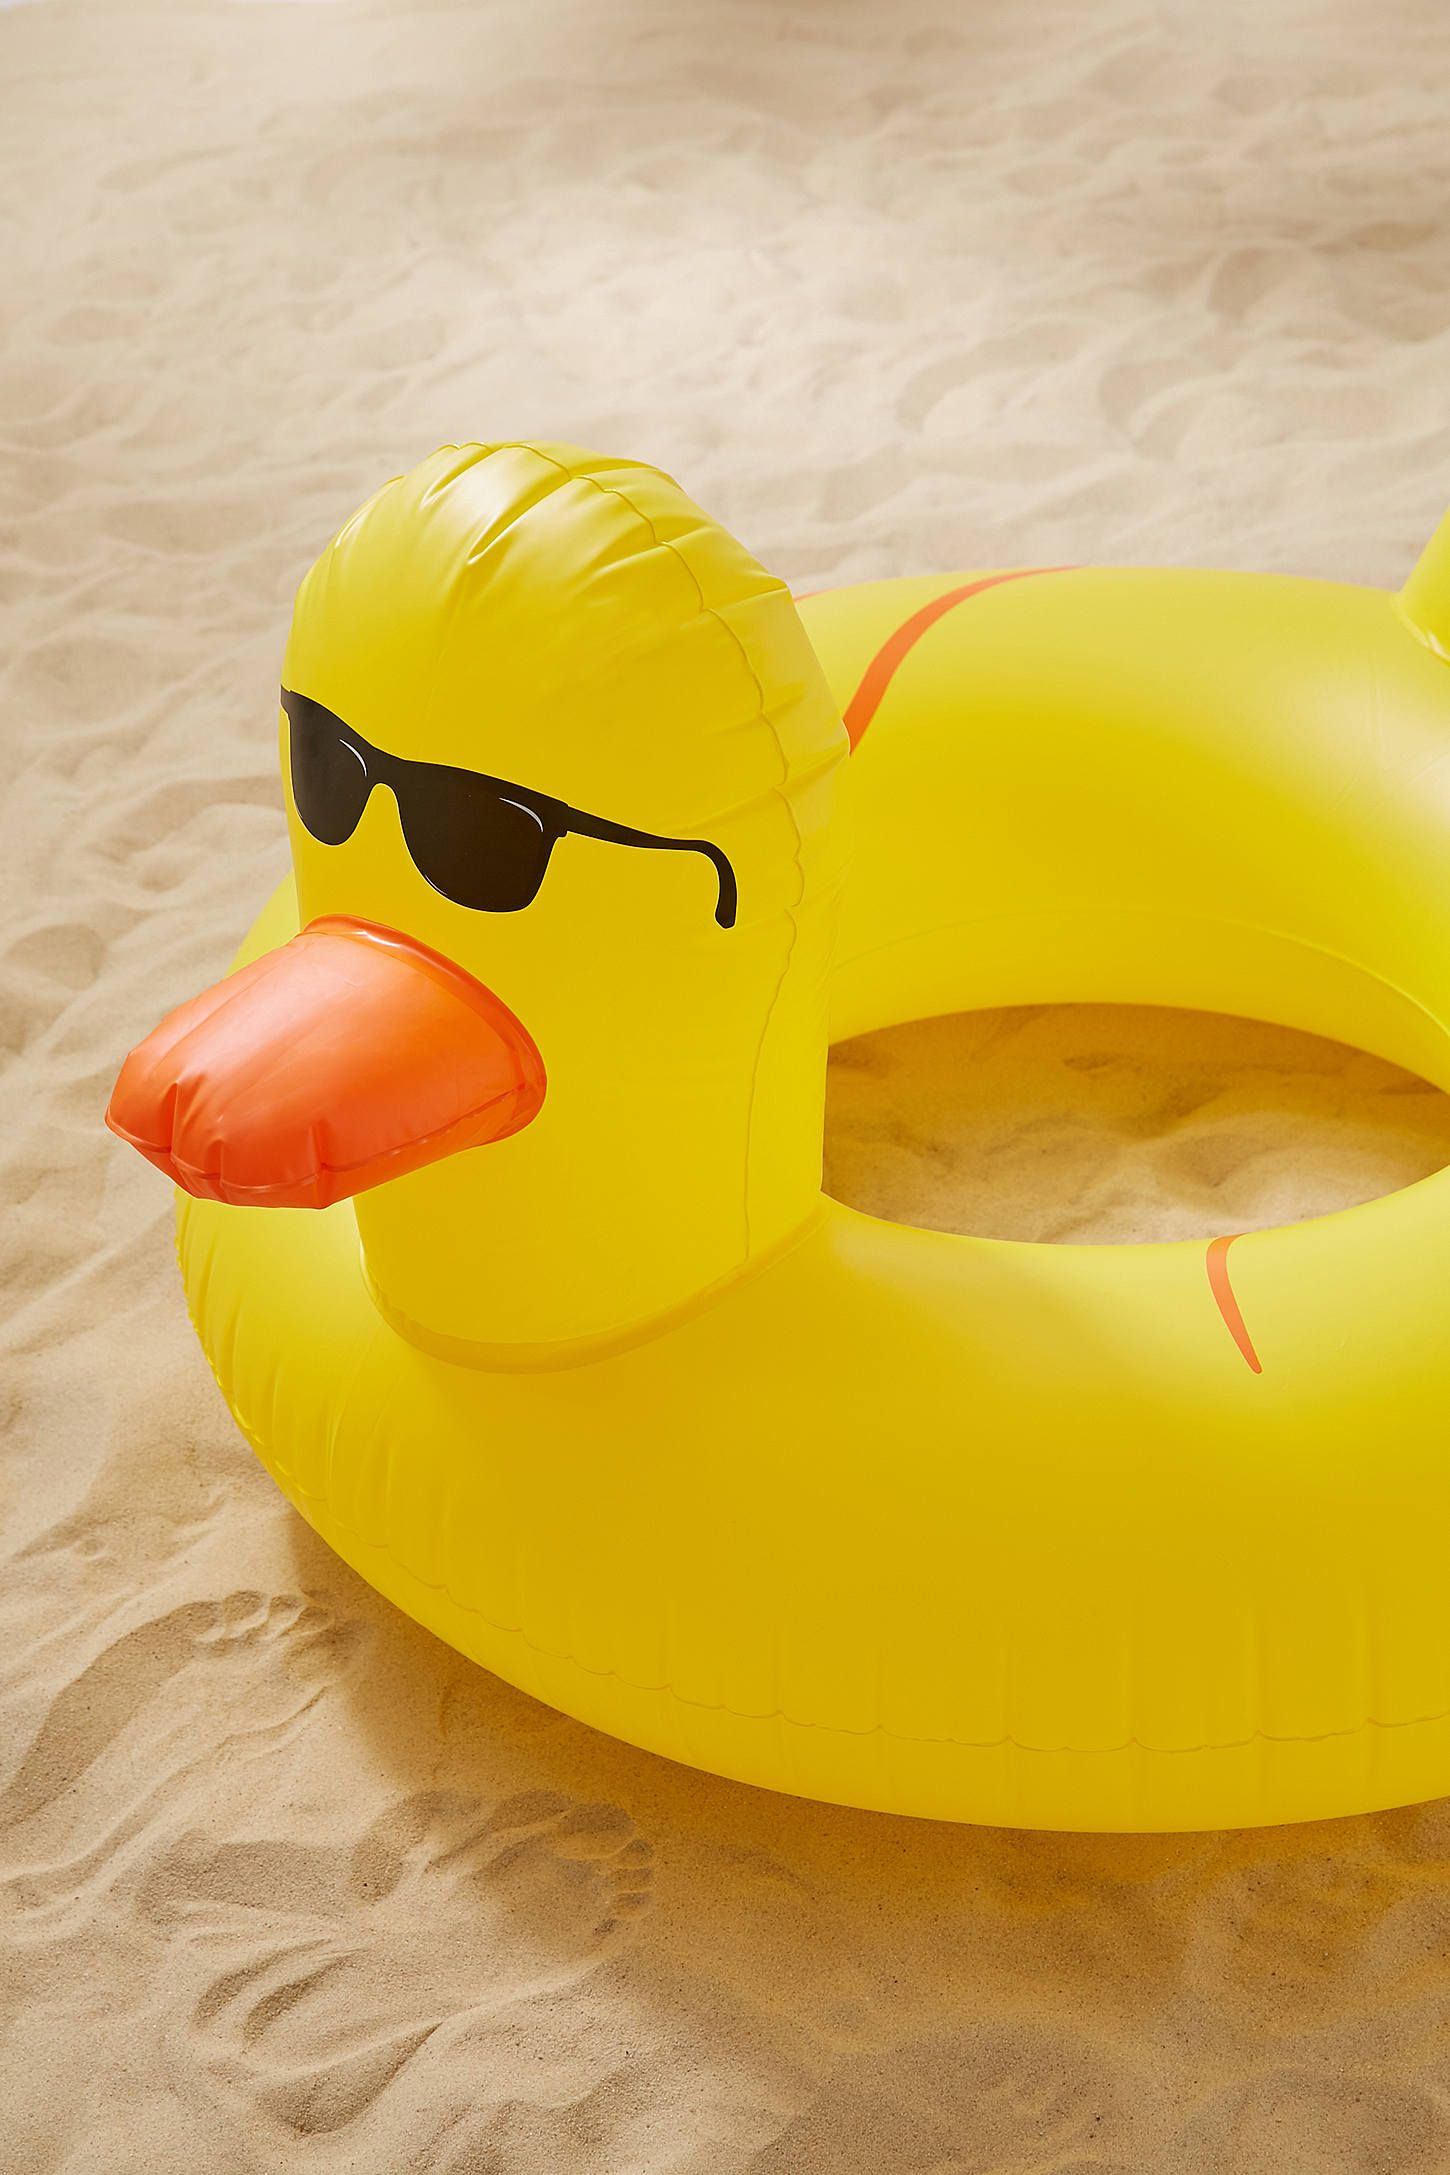 Slide View 1 Rubber Duckie Inner Tube Pool Float Summer Pool Floats Pool Float Pool